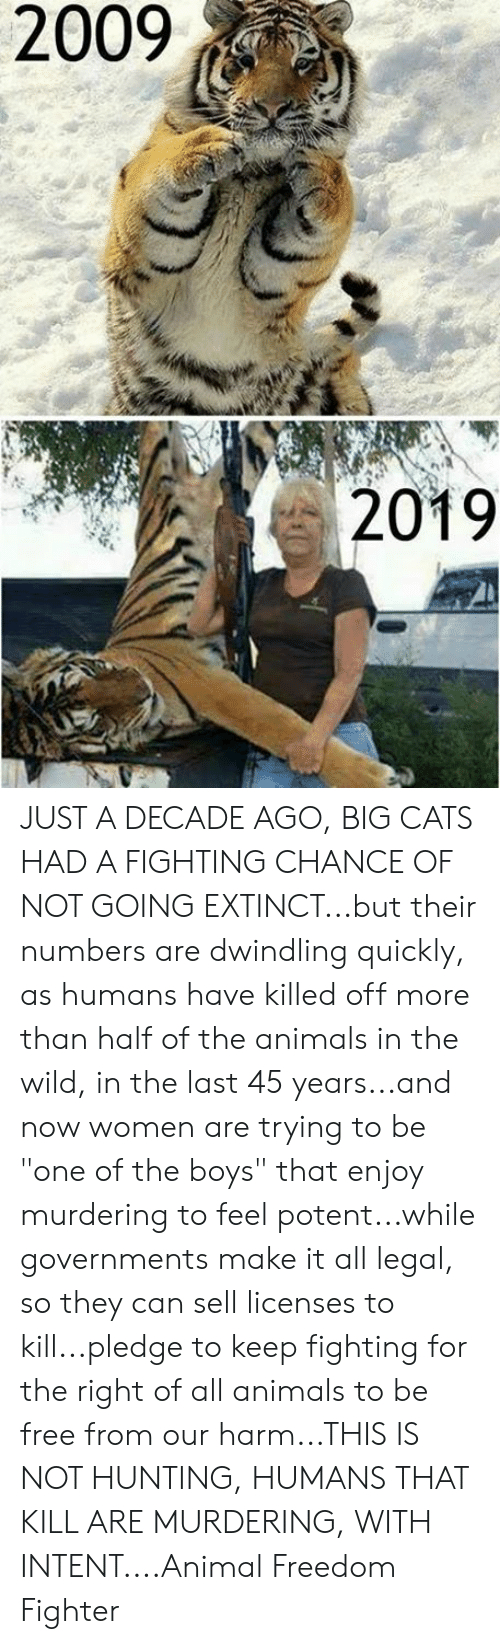 2009 2019 Just A Decade Ago Big Cats Had A Fighting Chance